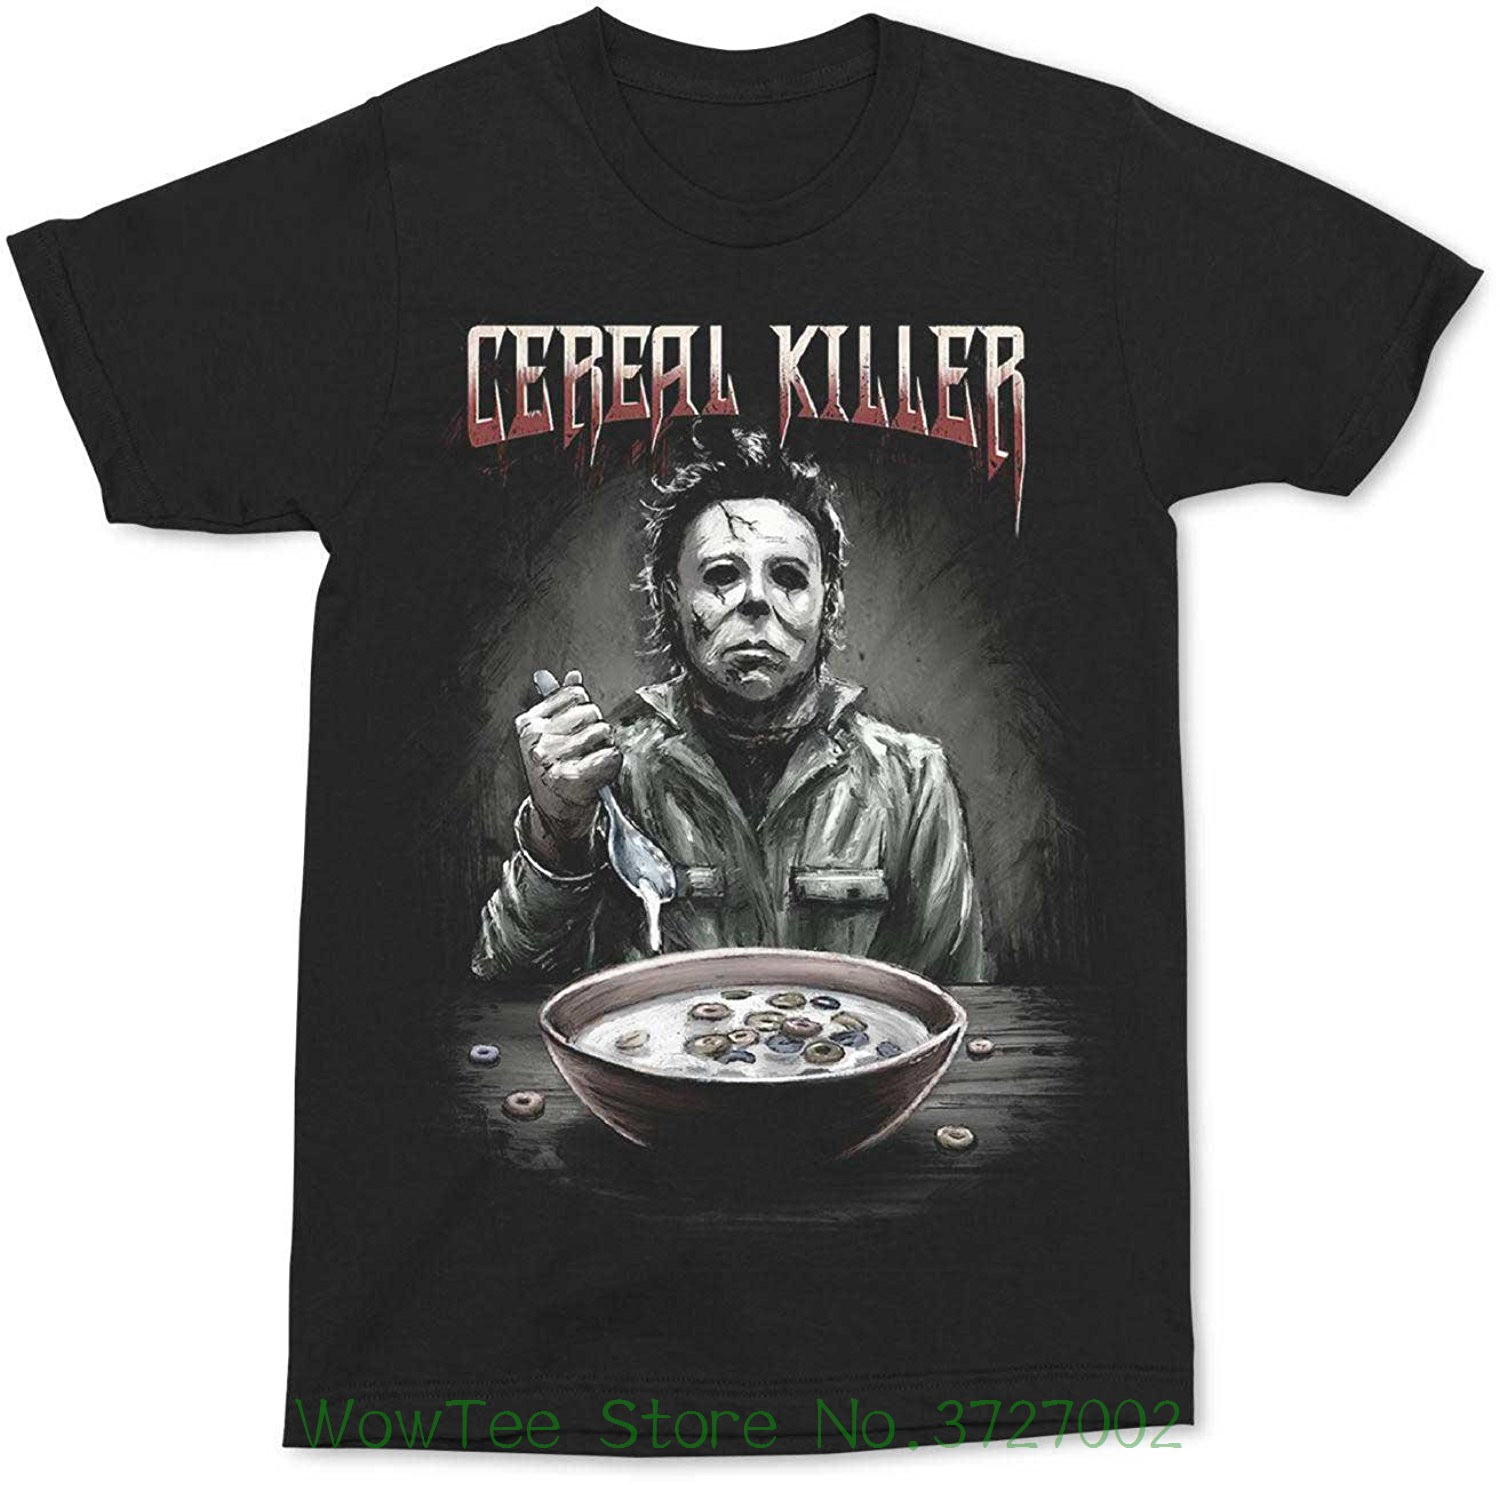 Changes Halloween Michael Myers Halloween Cereal Killer Black Shirt Mens Fashion Black Cotton